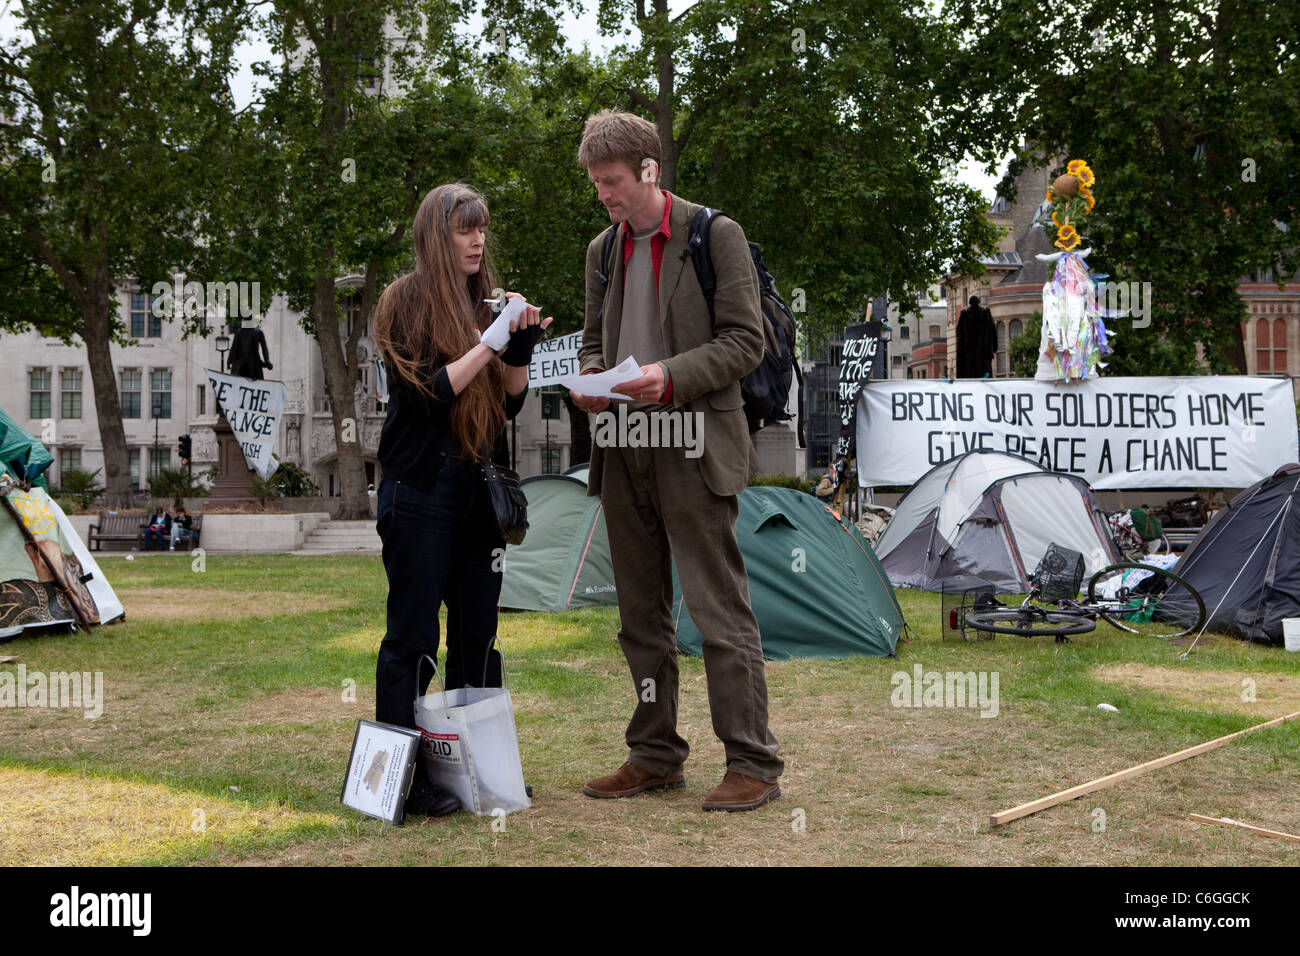 A campaigner for NO2ID talks to people at Democracy Village about new laws that threaten medical confidentiality. - Stock Image